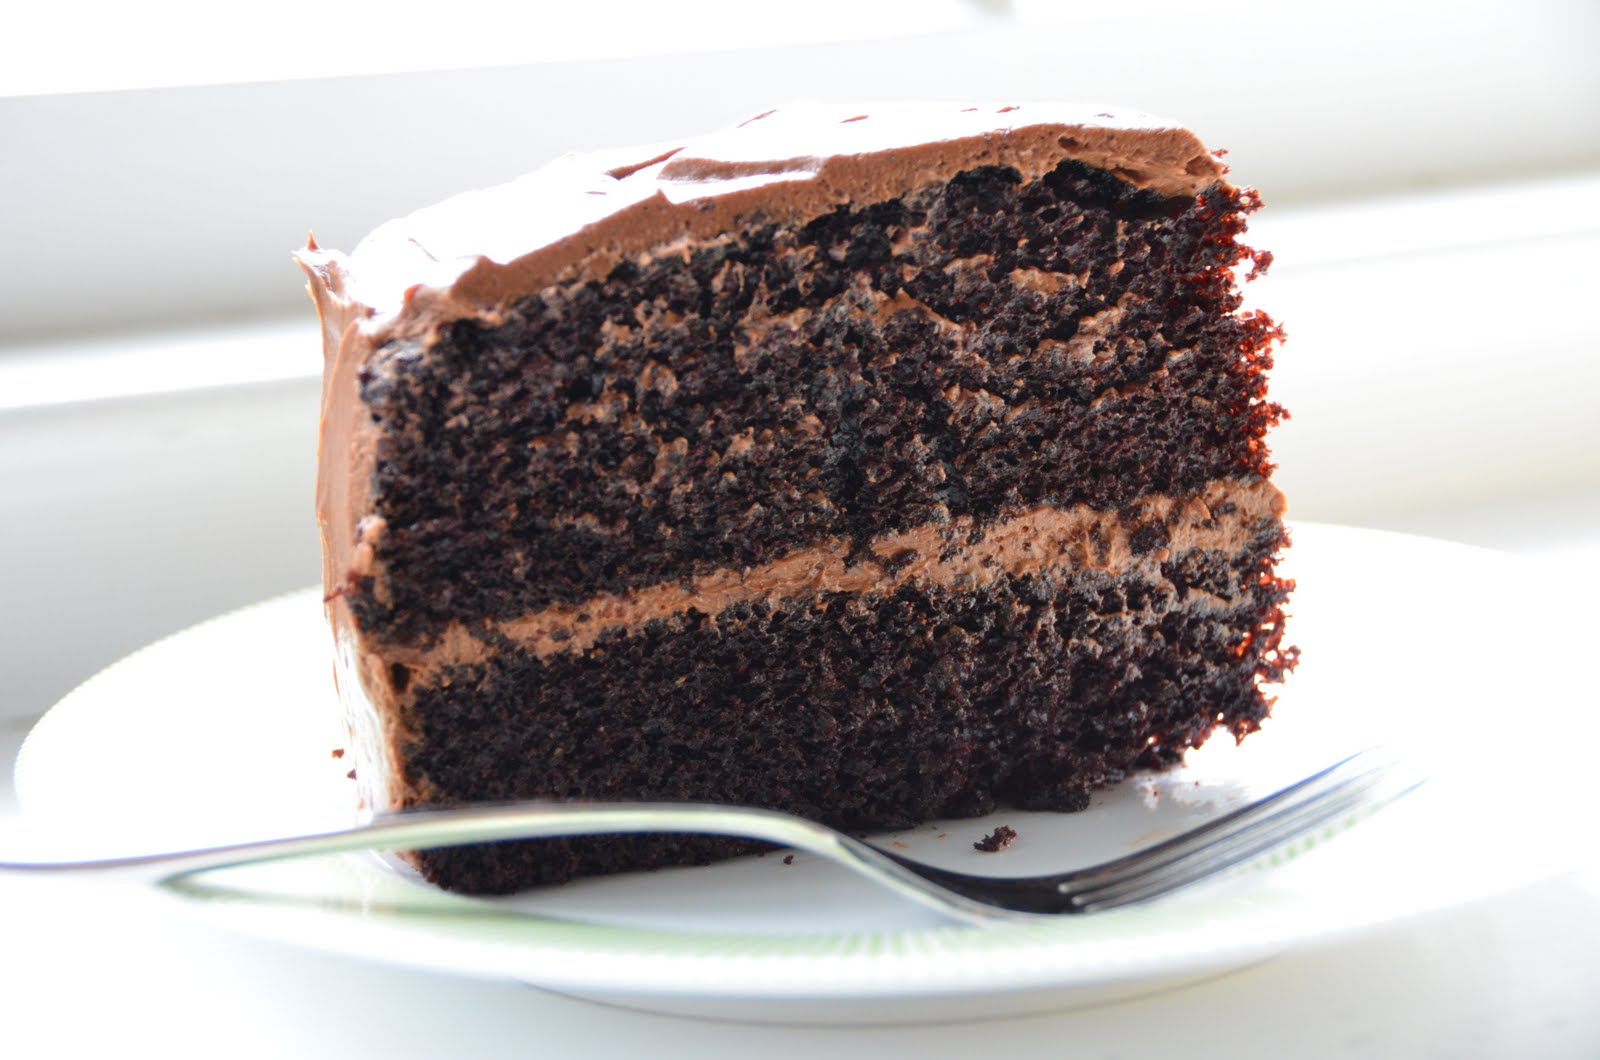 Barefoot Contessa Chocolate Buttercream Cake